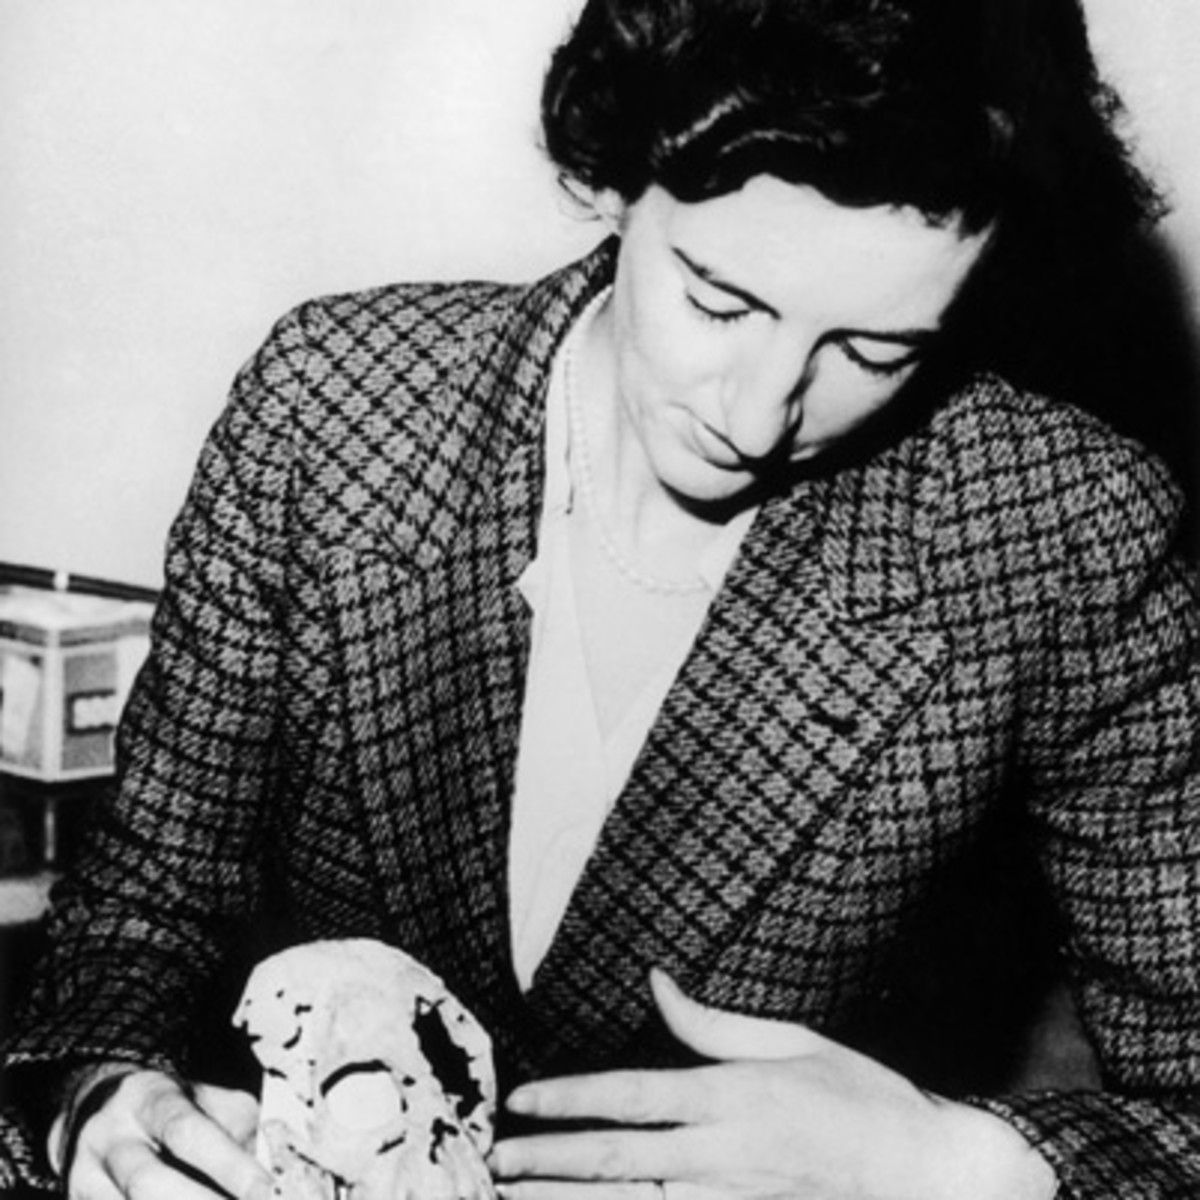 a biography of mary leakey an anthropologist Mary leakey's wiki: biography childhood mary leakey was born mary douglas nicol on 6 february 1913 mary leakey, archaeologist and anthropologist.